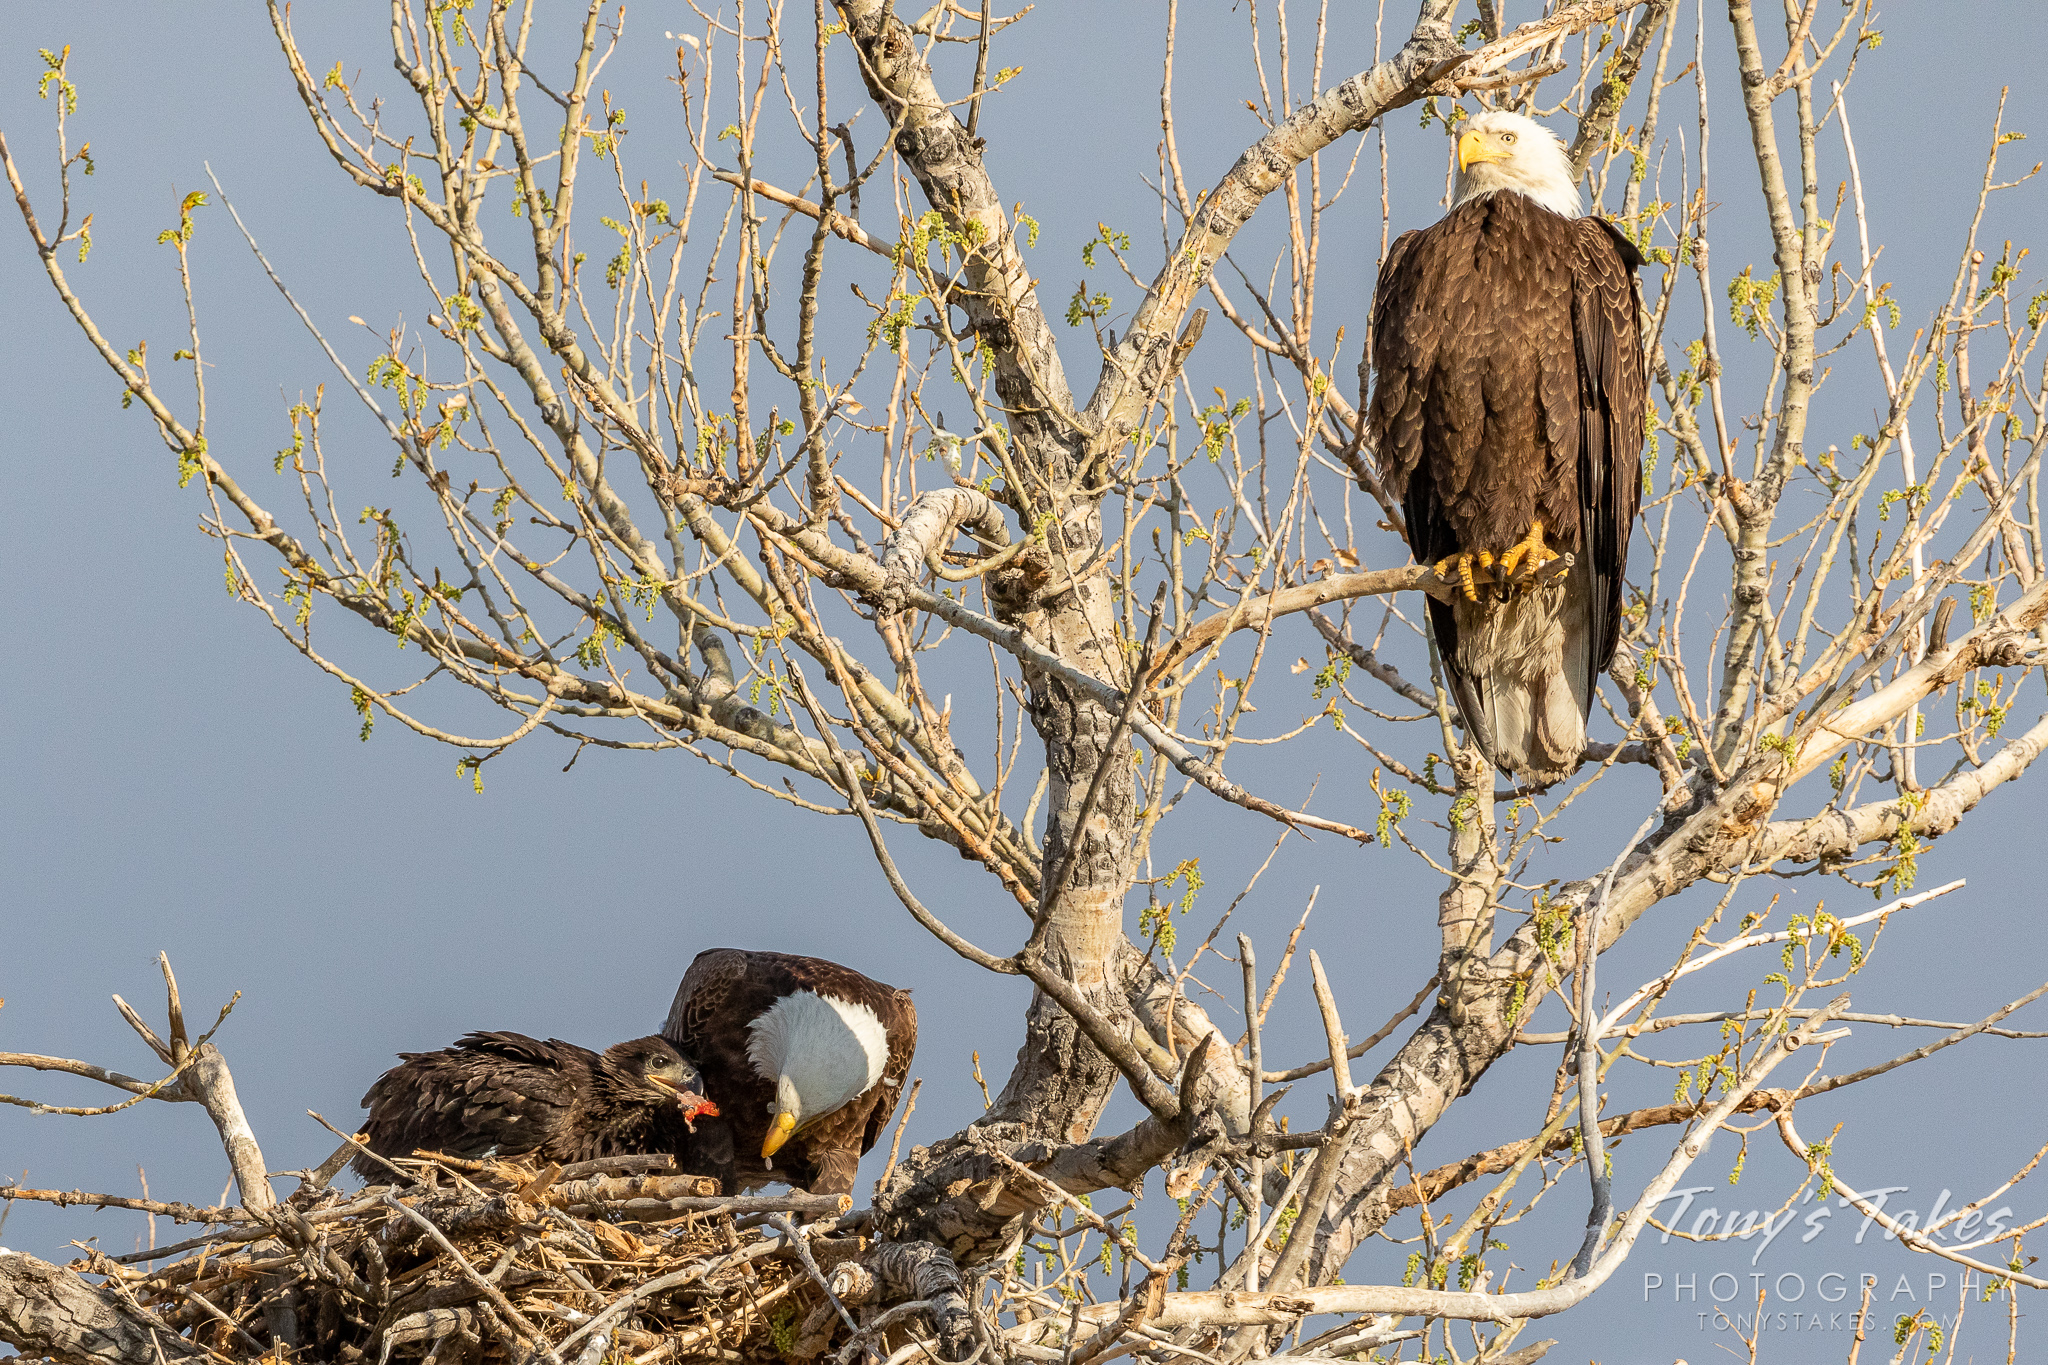 A bald eagle returns to its nest with a fish for the family. (© Tony's Takes)